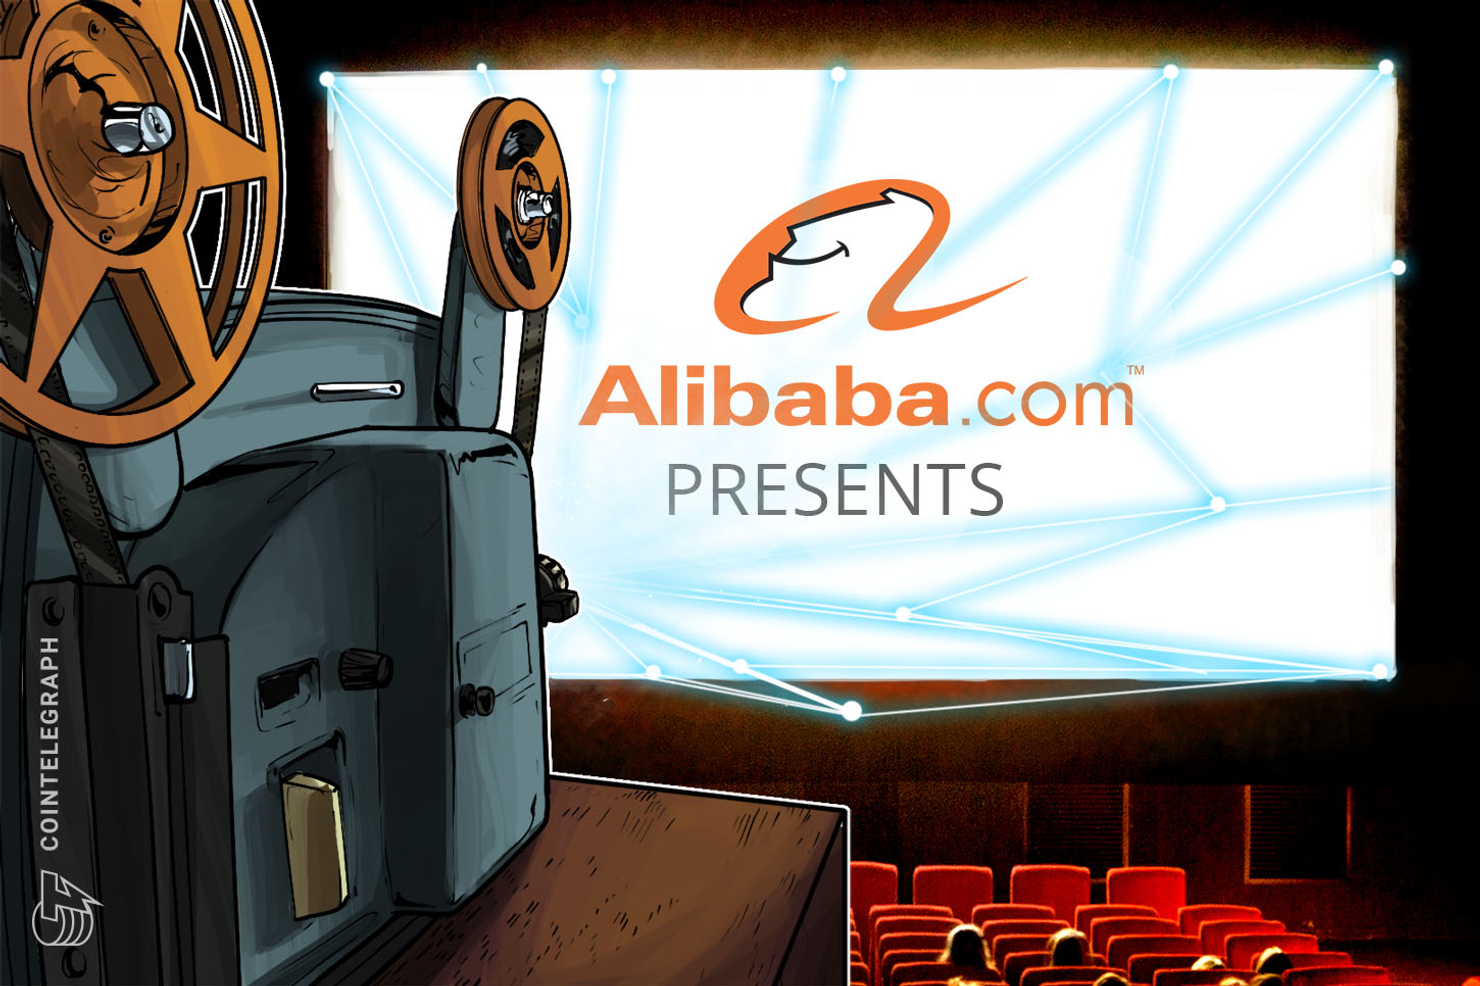 Alibaba Filmmaking Arm to Distribute New Movie Rights via Tokens: Report